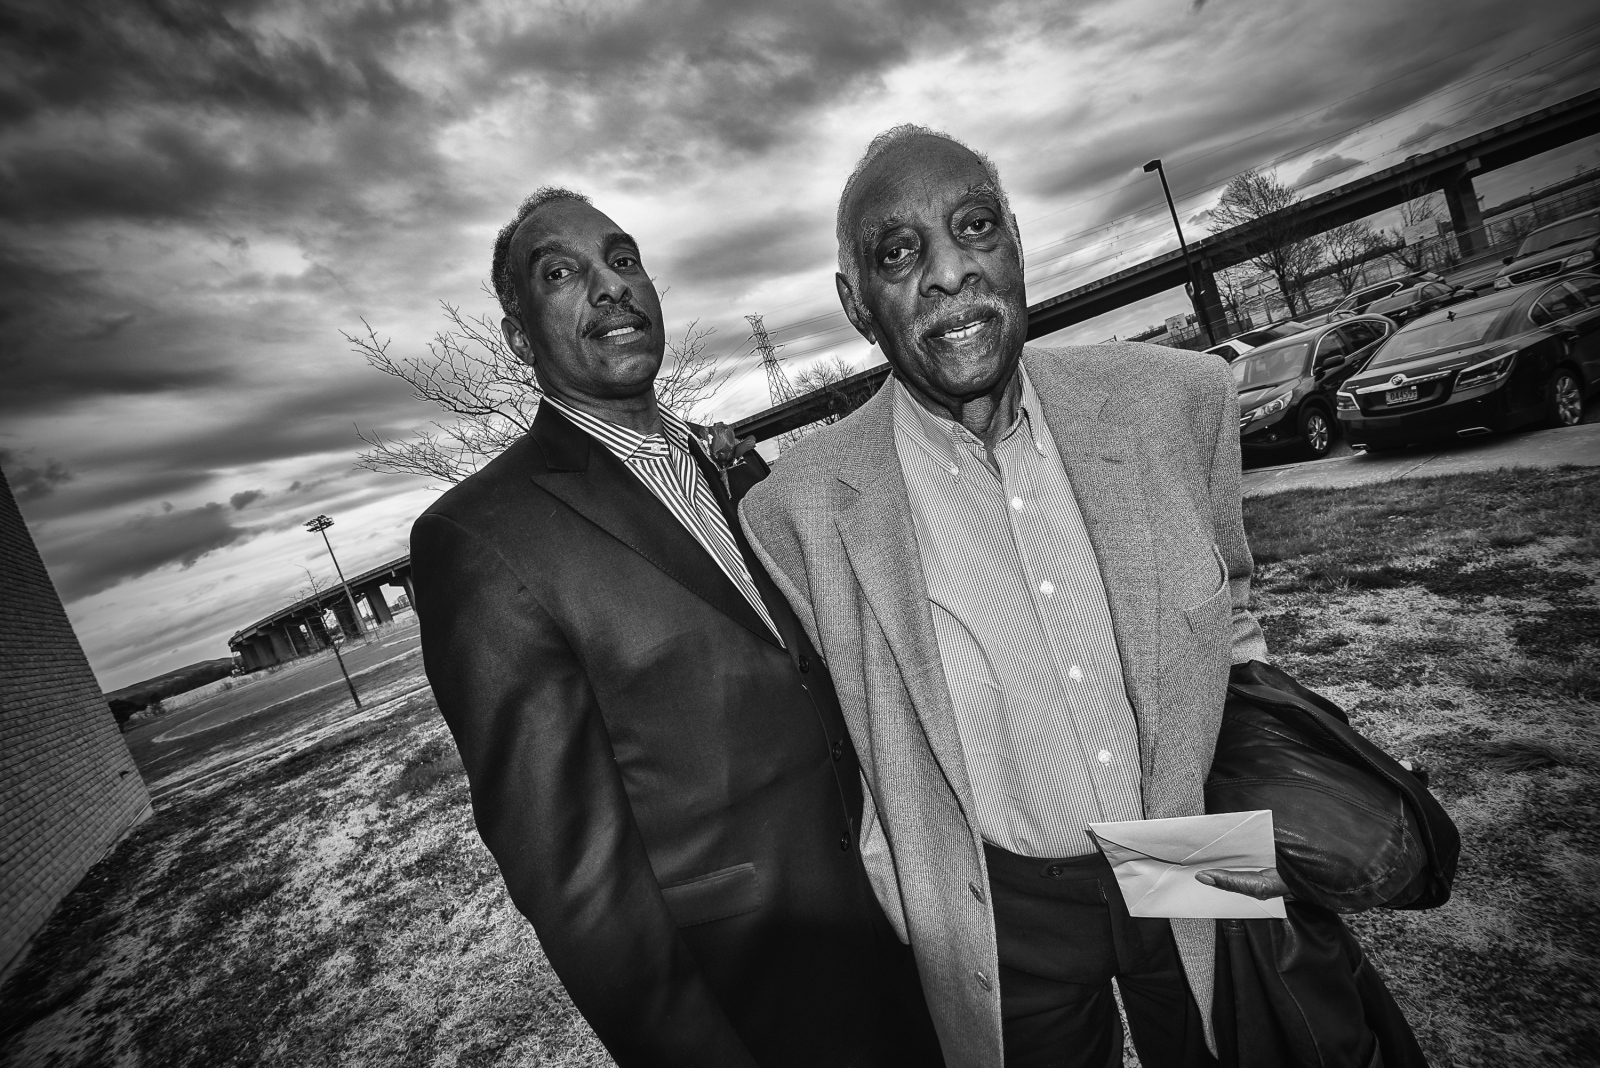 Eddie Bartee Jr. and Eddie Bartee Sr. Eddie Sr. was integral in desegerating the mills at Sparrows Point and was the first black president of Local 2610.